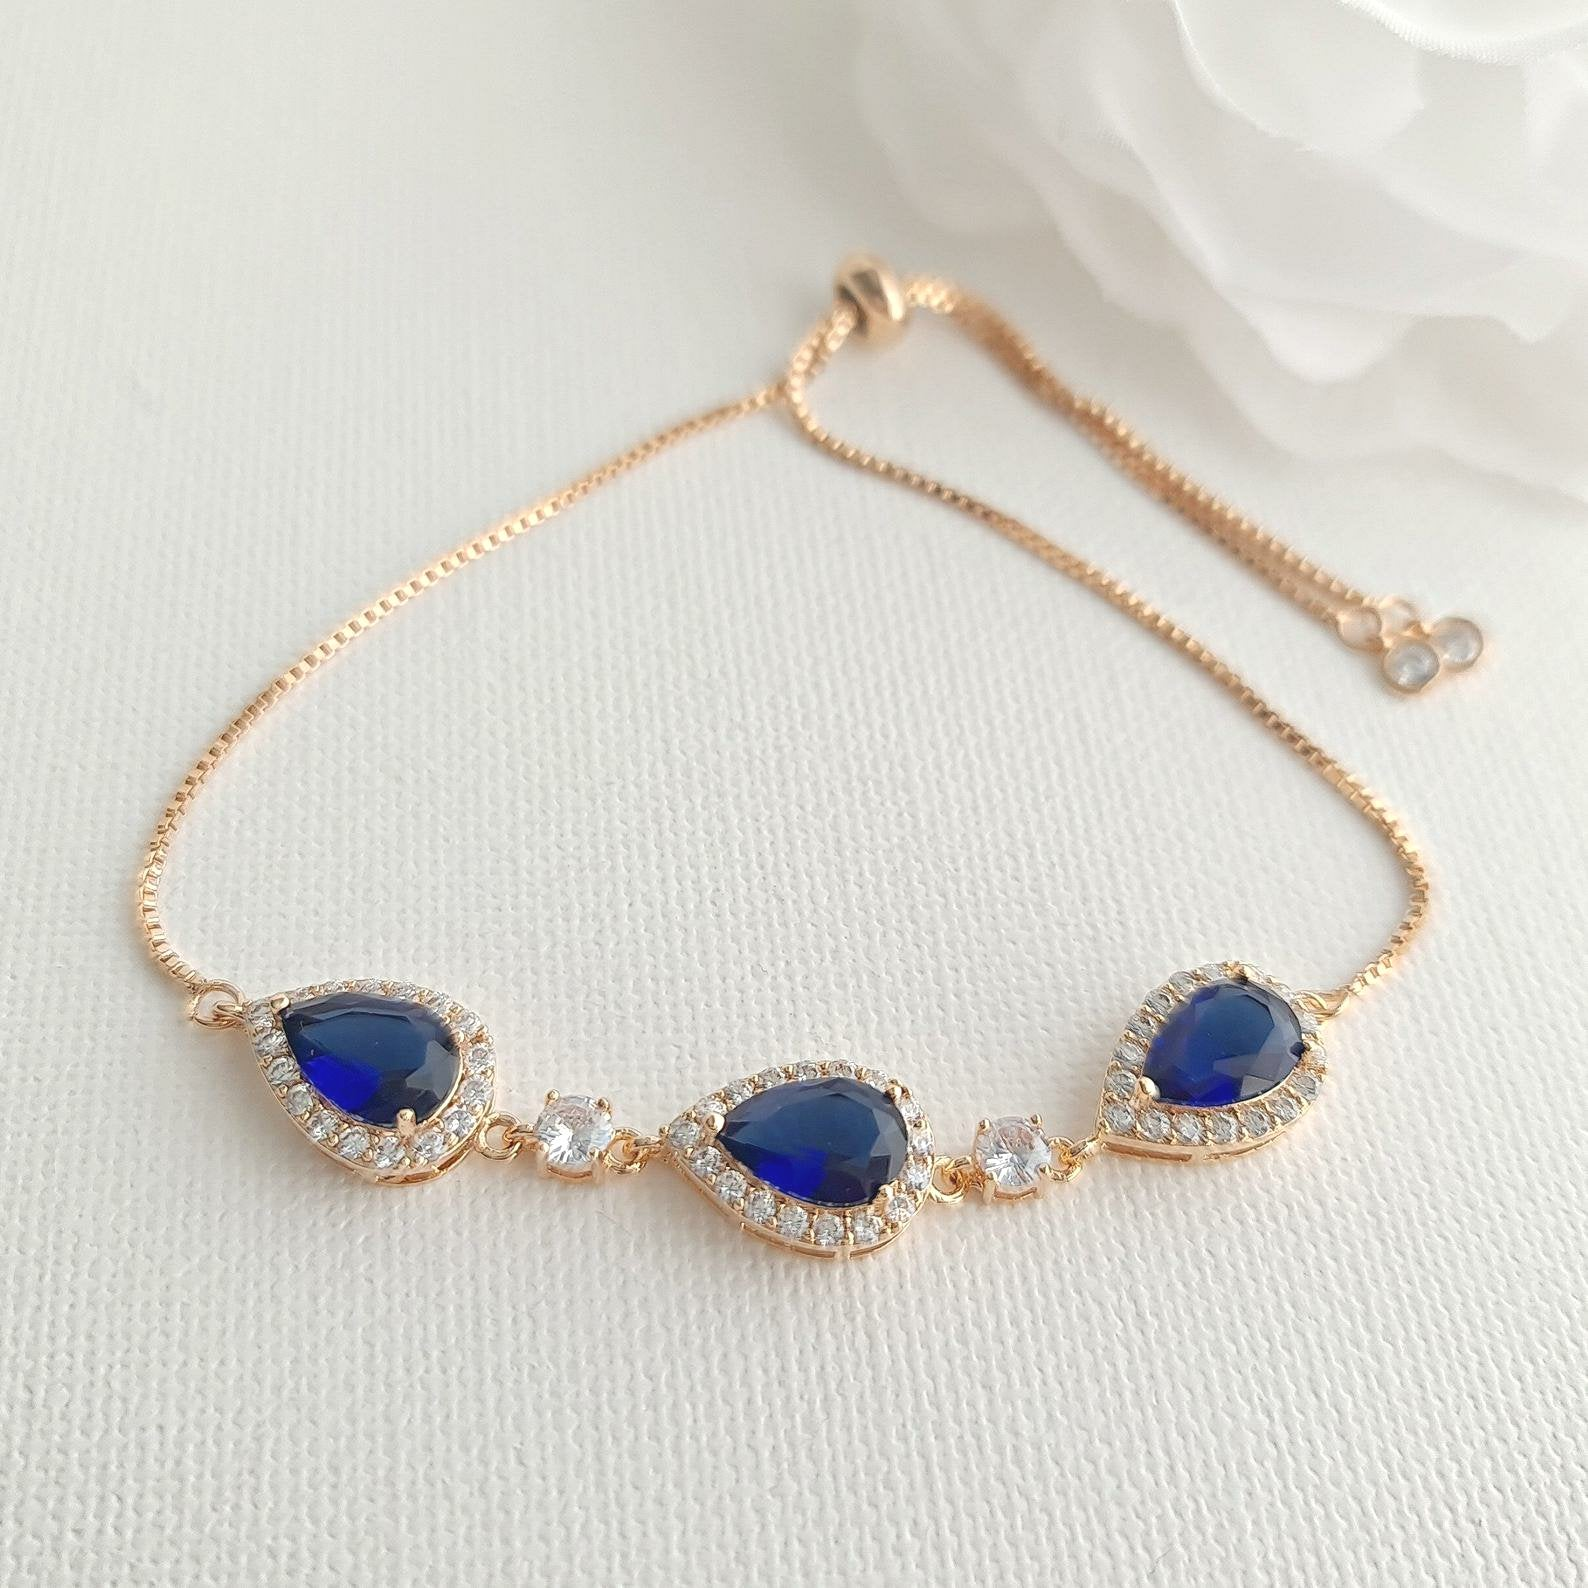 Bracelet in Sapphire Blue & Rose Gold for Bride & Bridesmaids-Aoi - PoetryDesigns